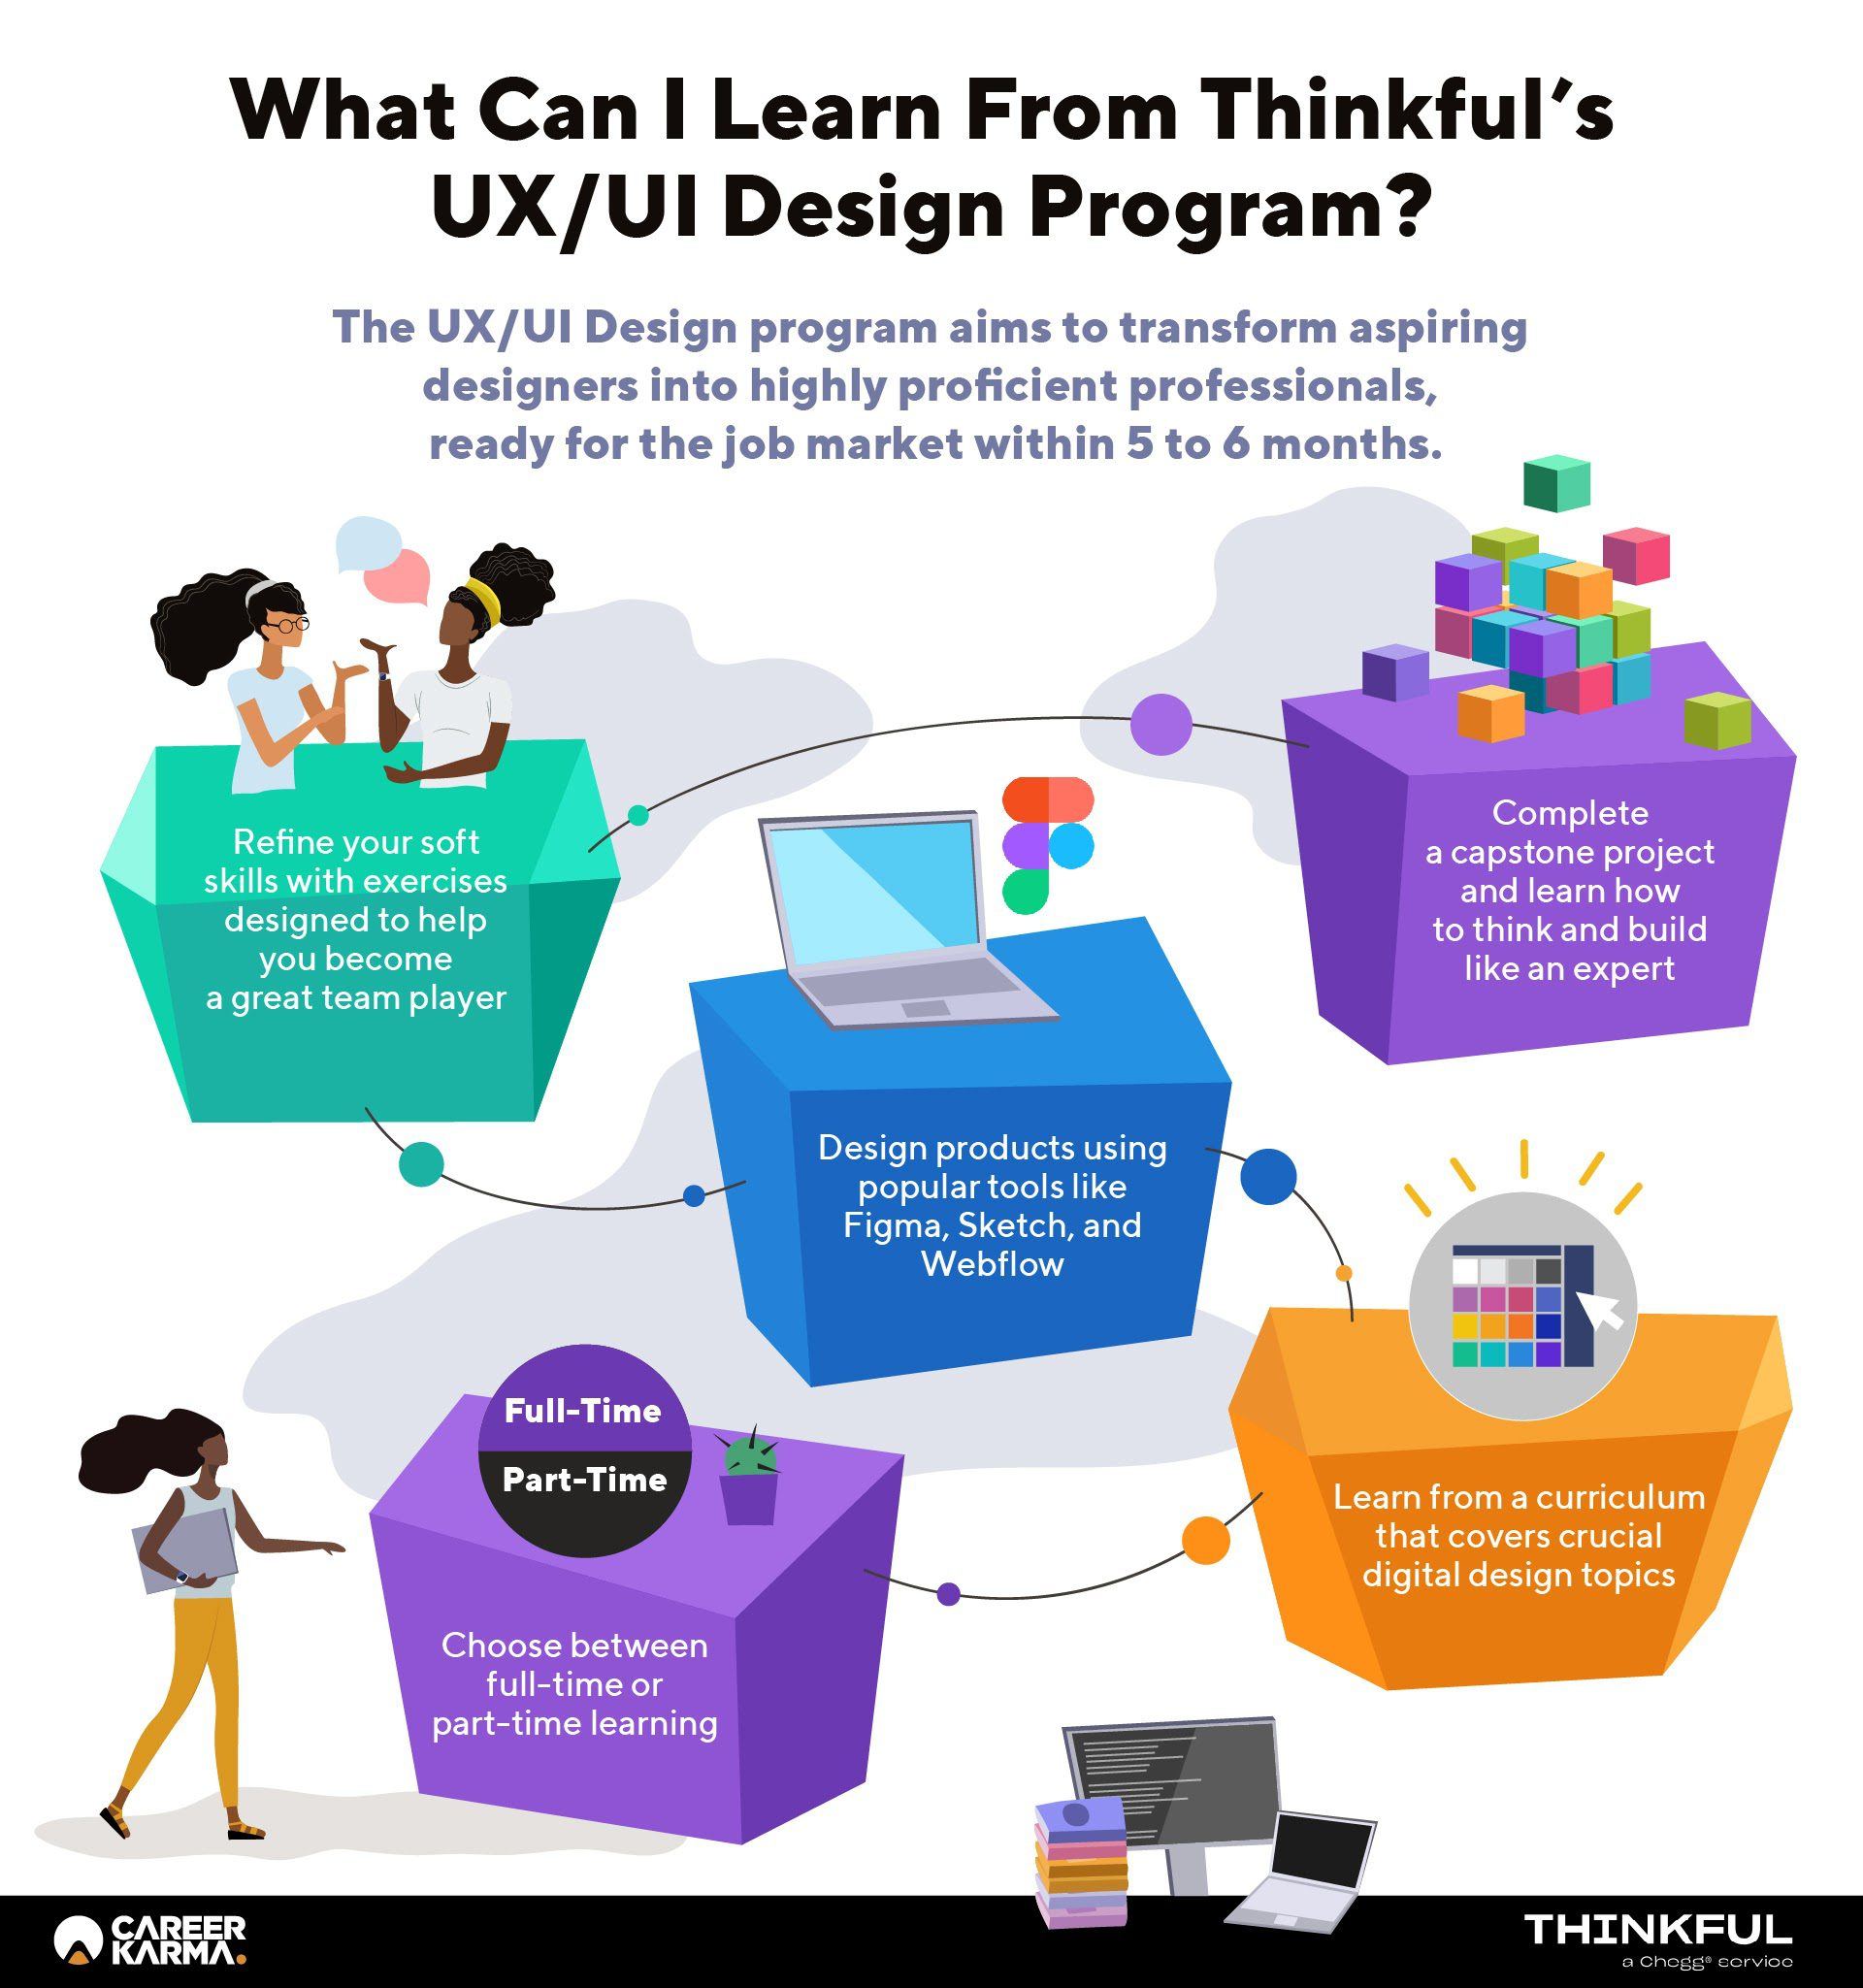 An infographic showing the key learning aspects of Thinkful's UX/UI Design course